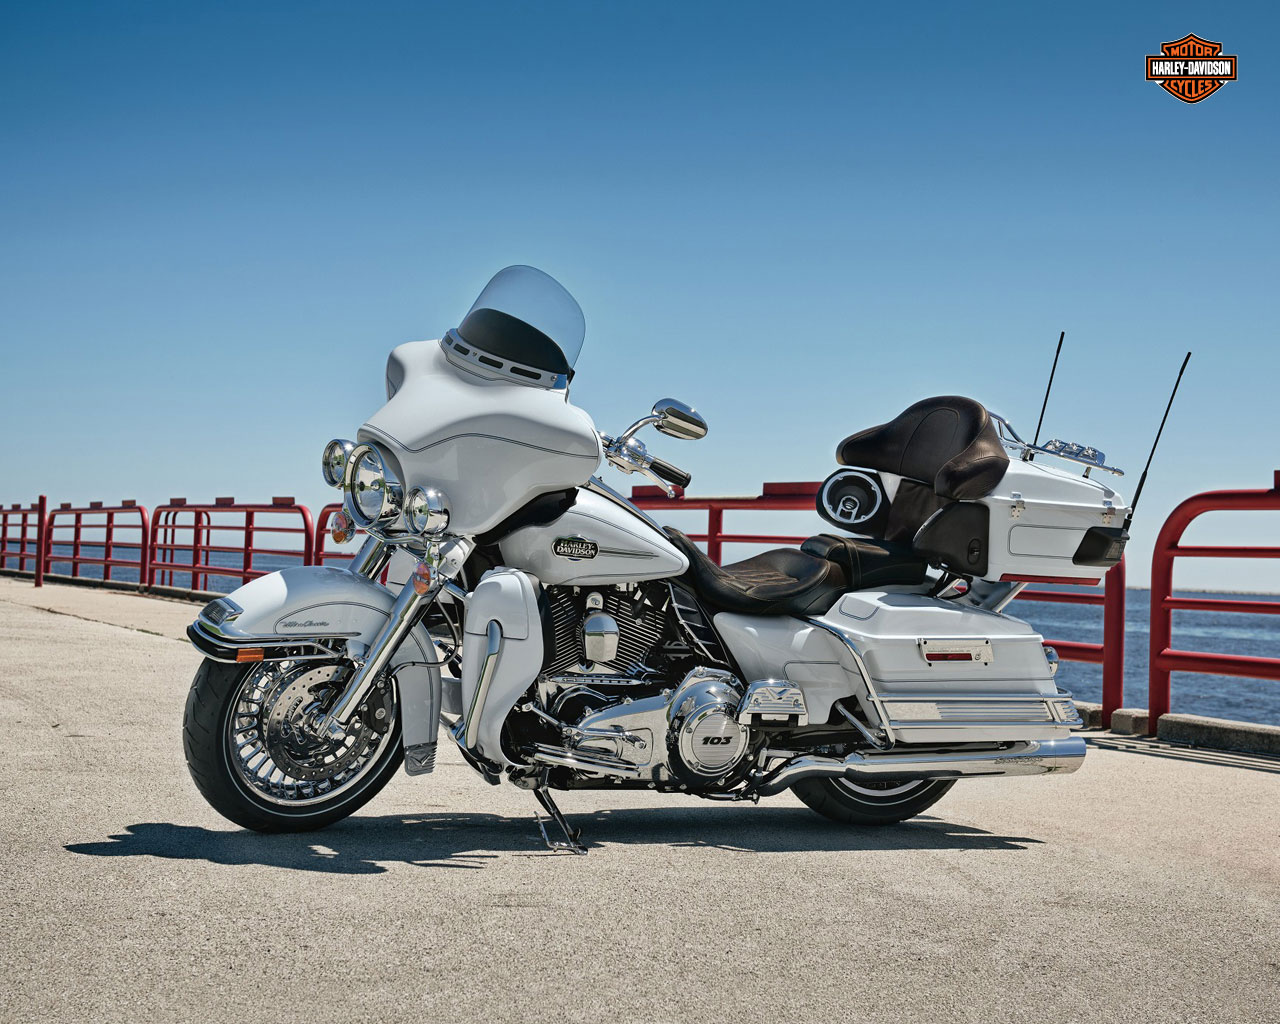 1280x1024 - Harley-Davidson Electra Glide Ultra Classic Wallpapers 27